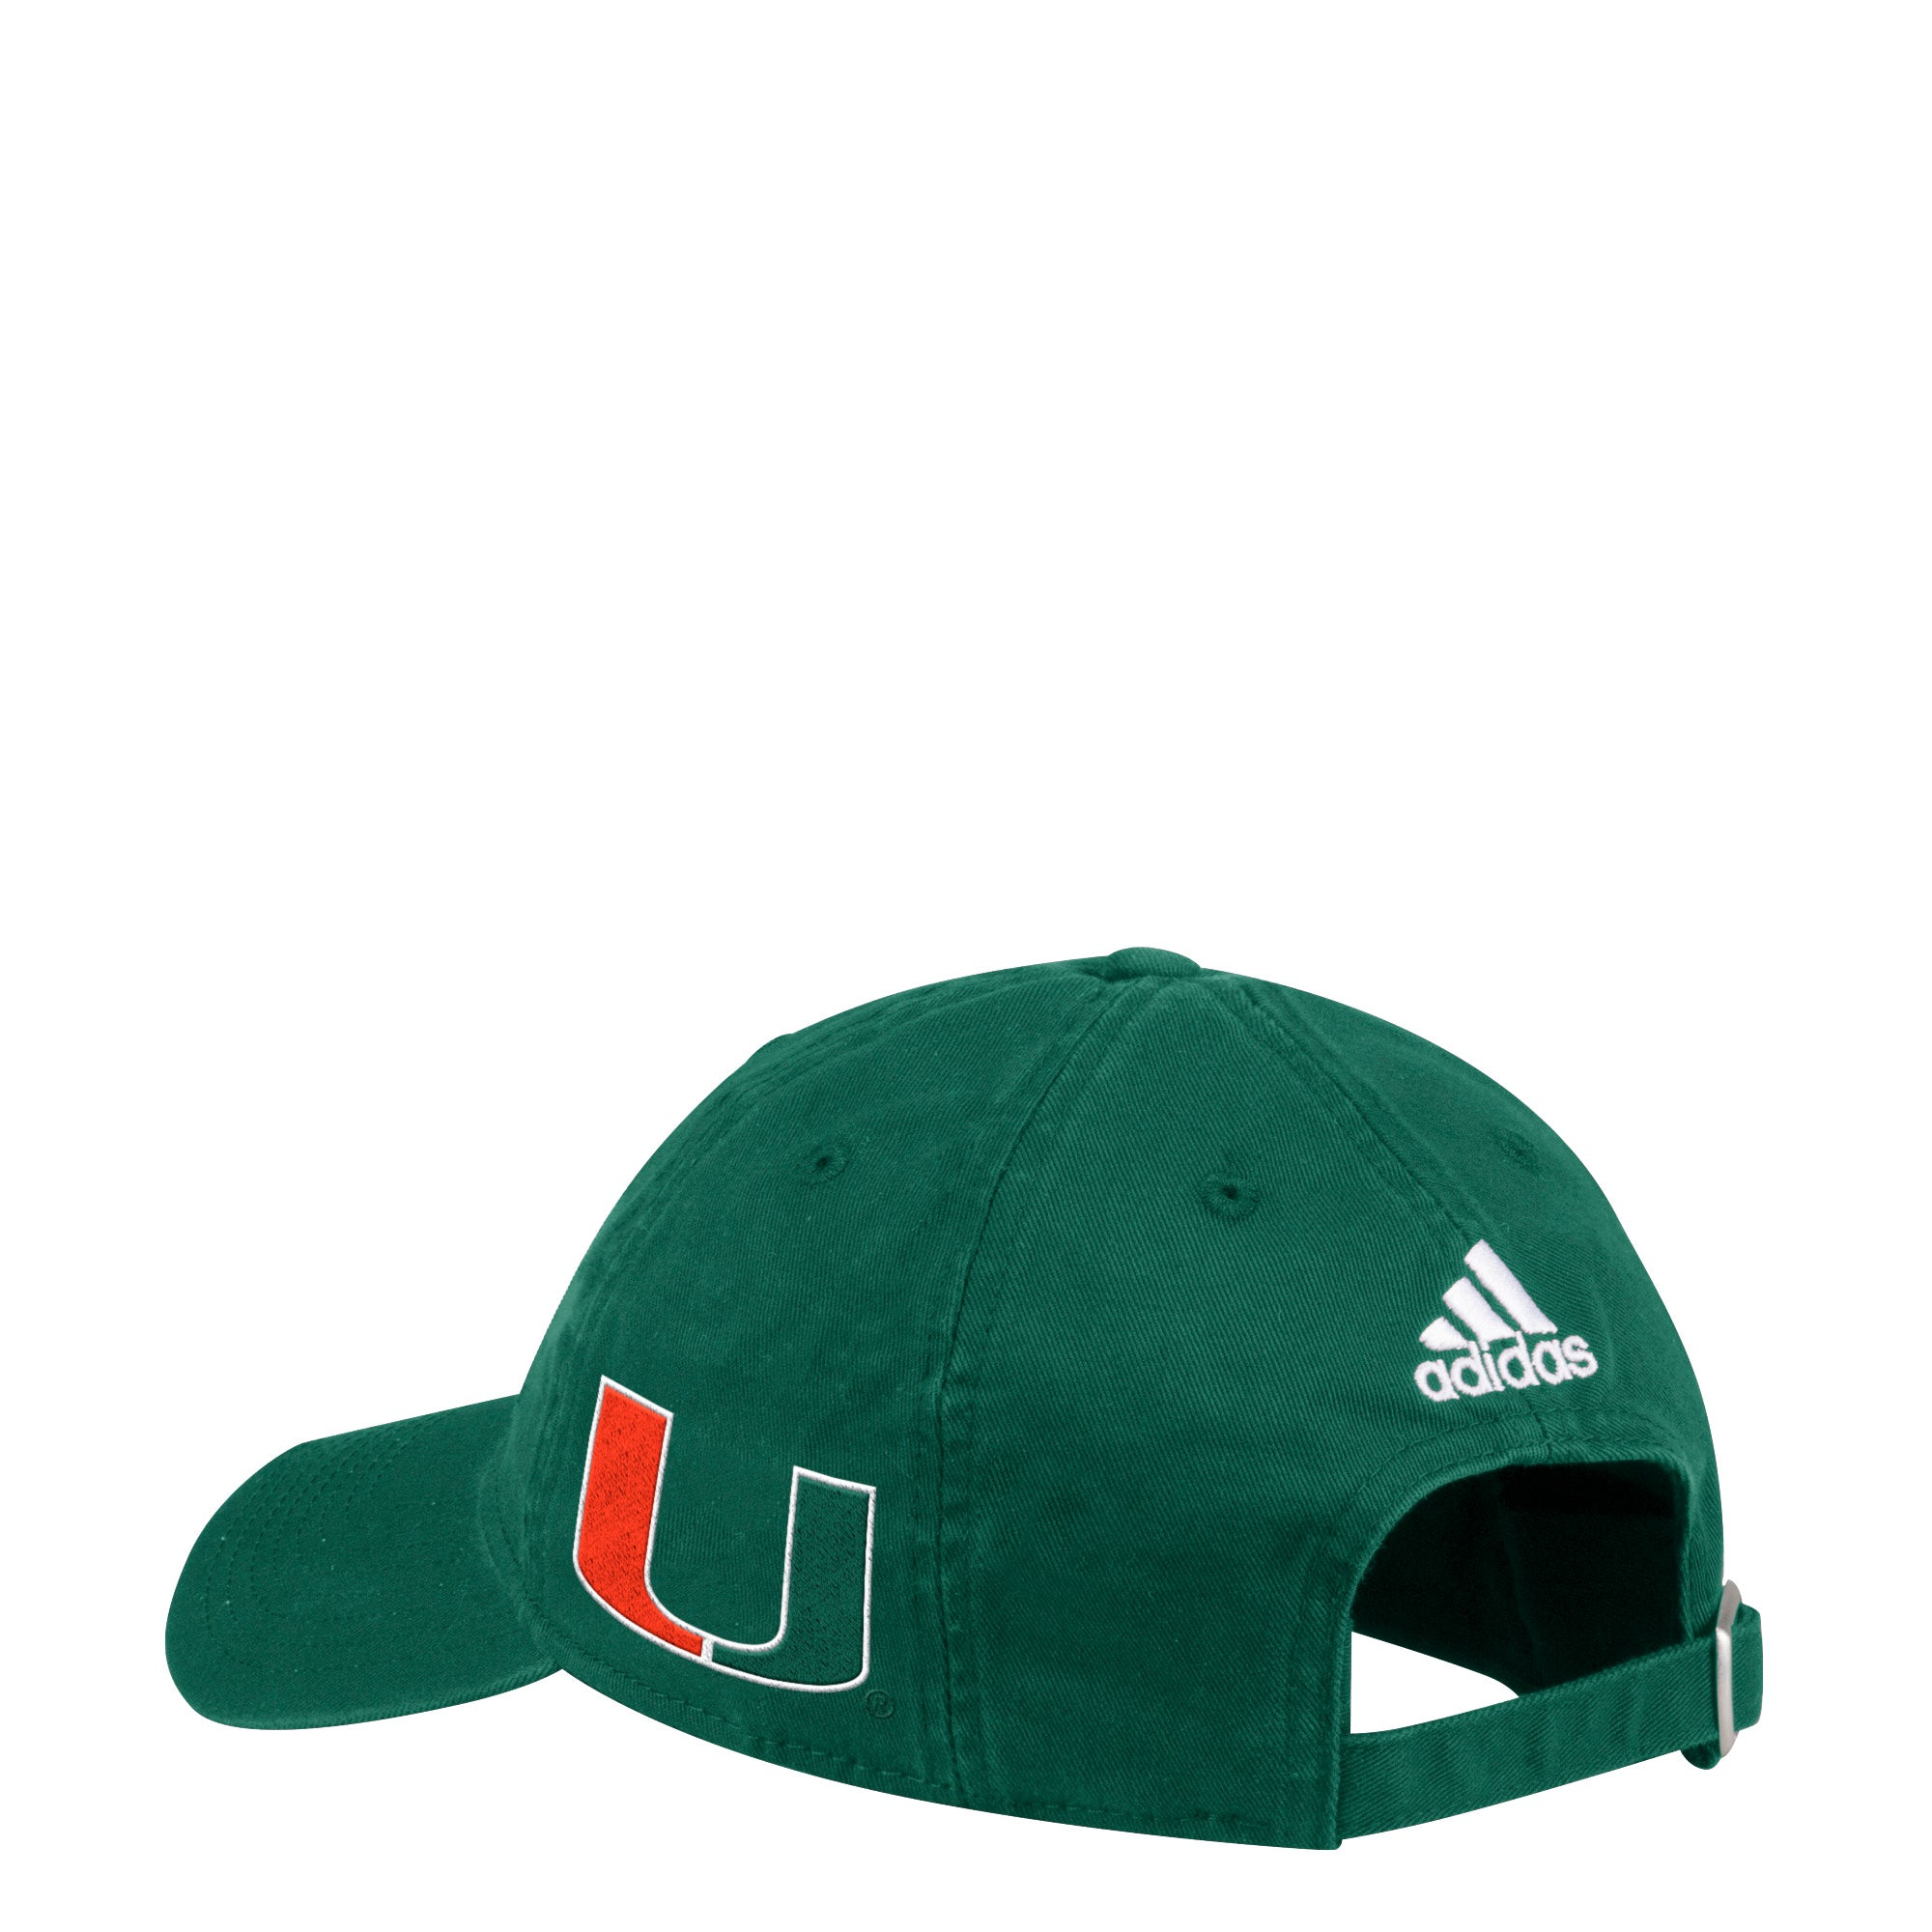 more photos 5ce5f 5e827 Miami Hurricanes adidas 2018 Side U Adjustable Slouch Hat - Green